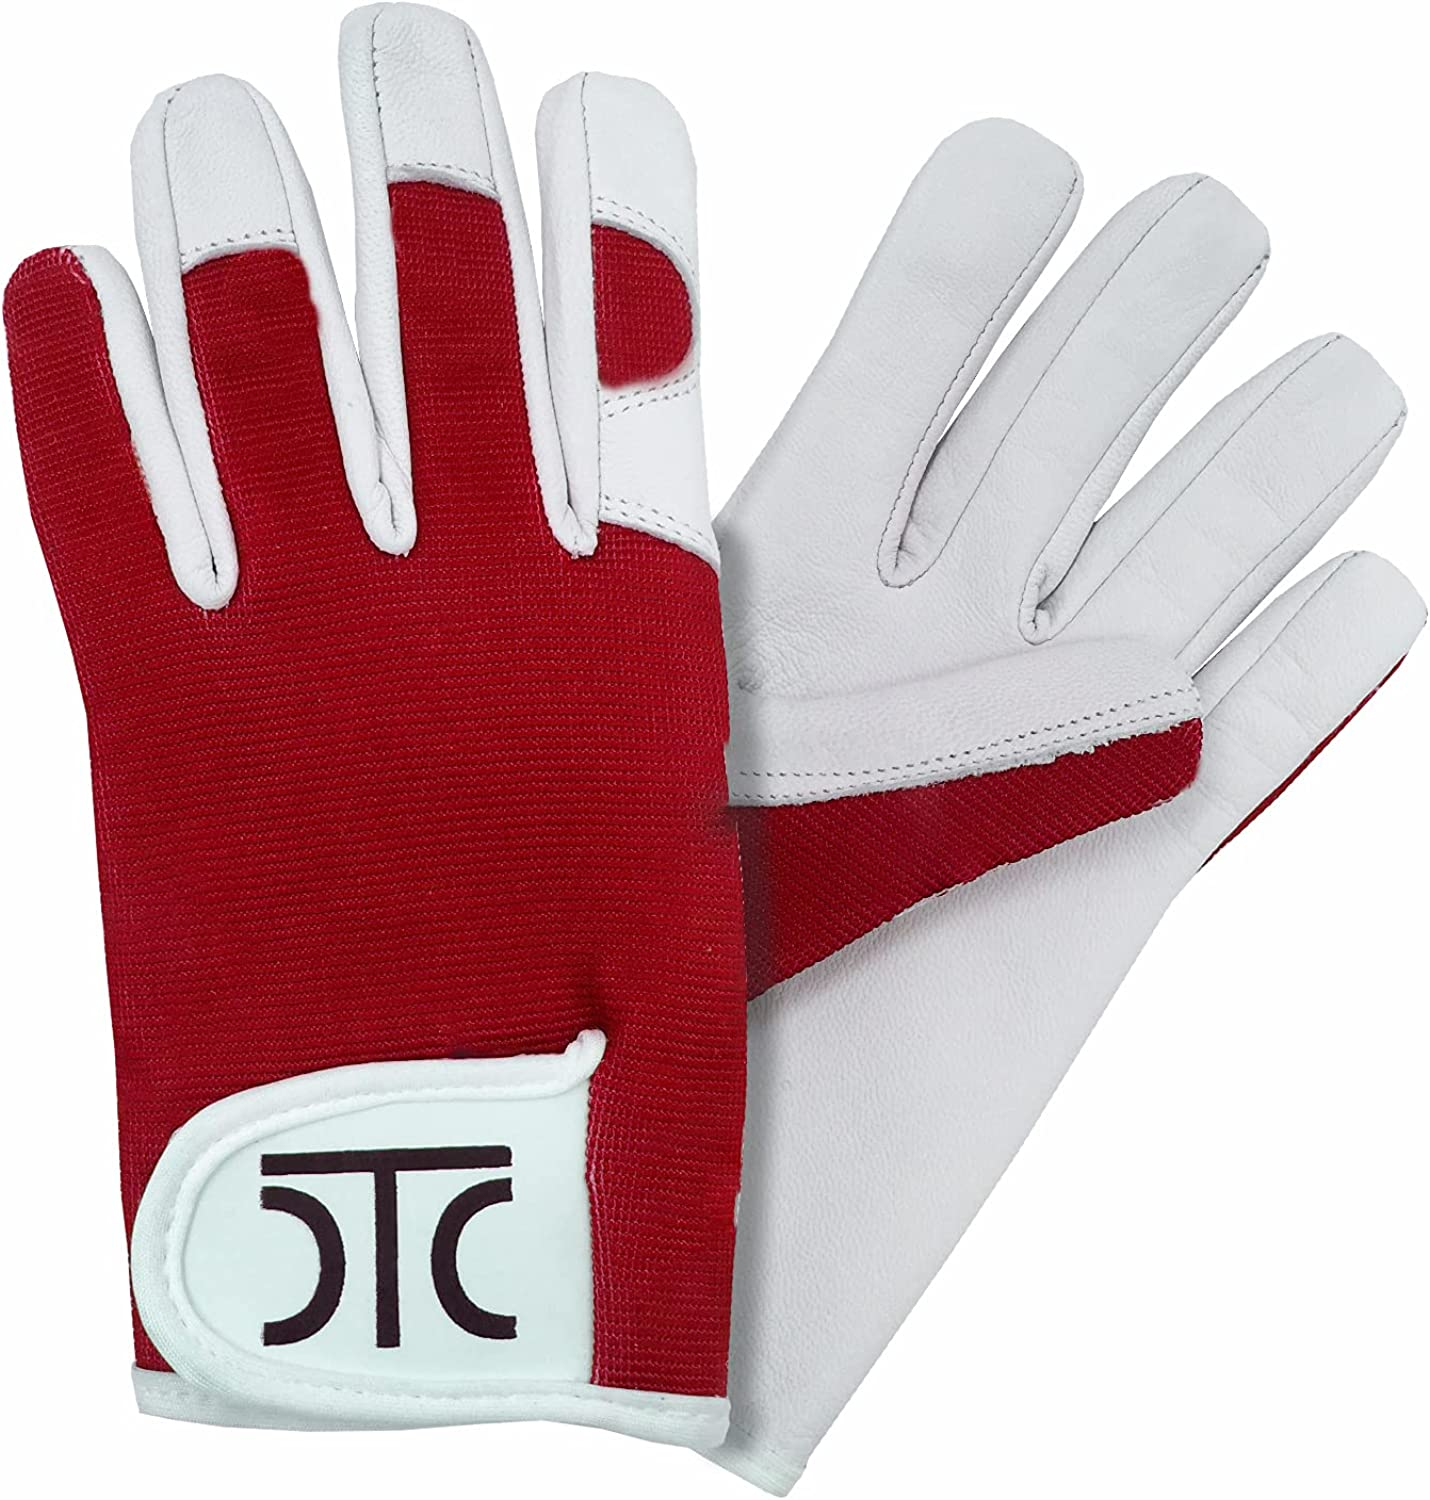 DTC Real Leather Gardening Gloves Thorn Proof with Goatskin Leather Palm for Men and Women (4-Colors, Regular Sizes).